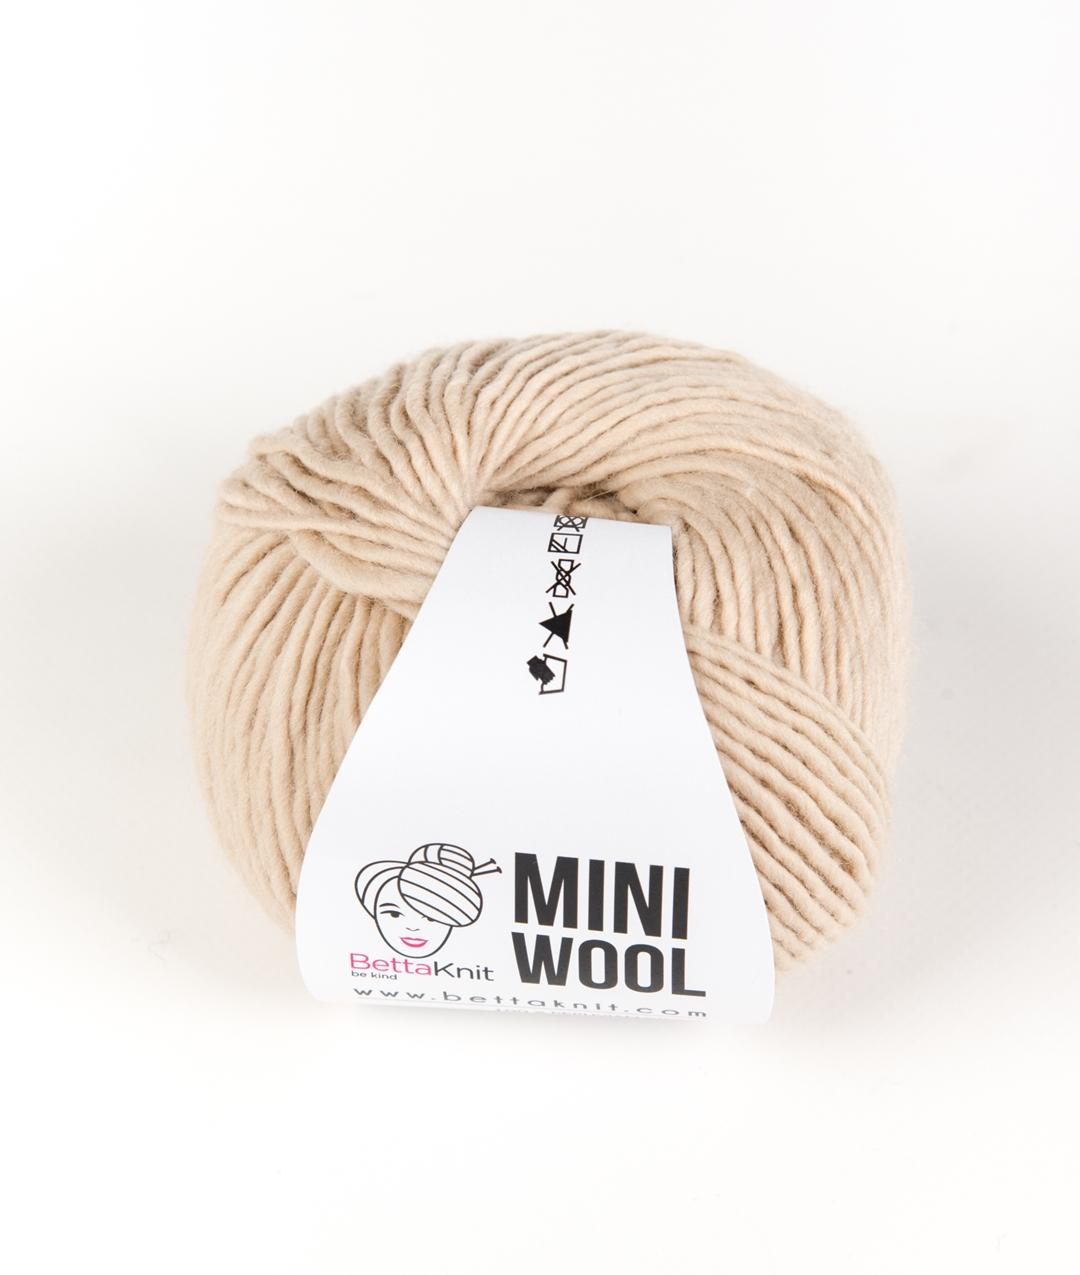 Lana - Filati - Mini Wool - 1